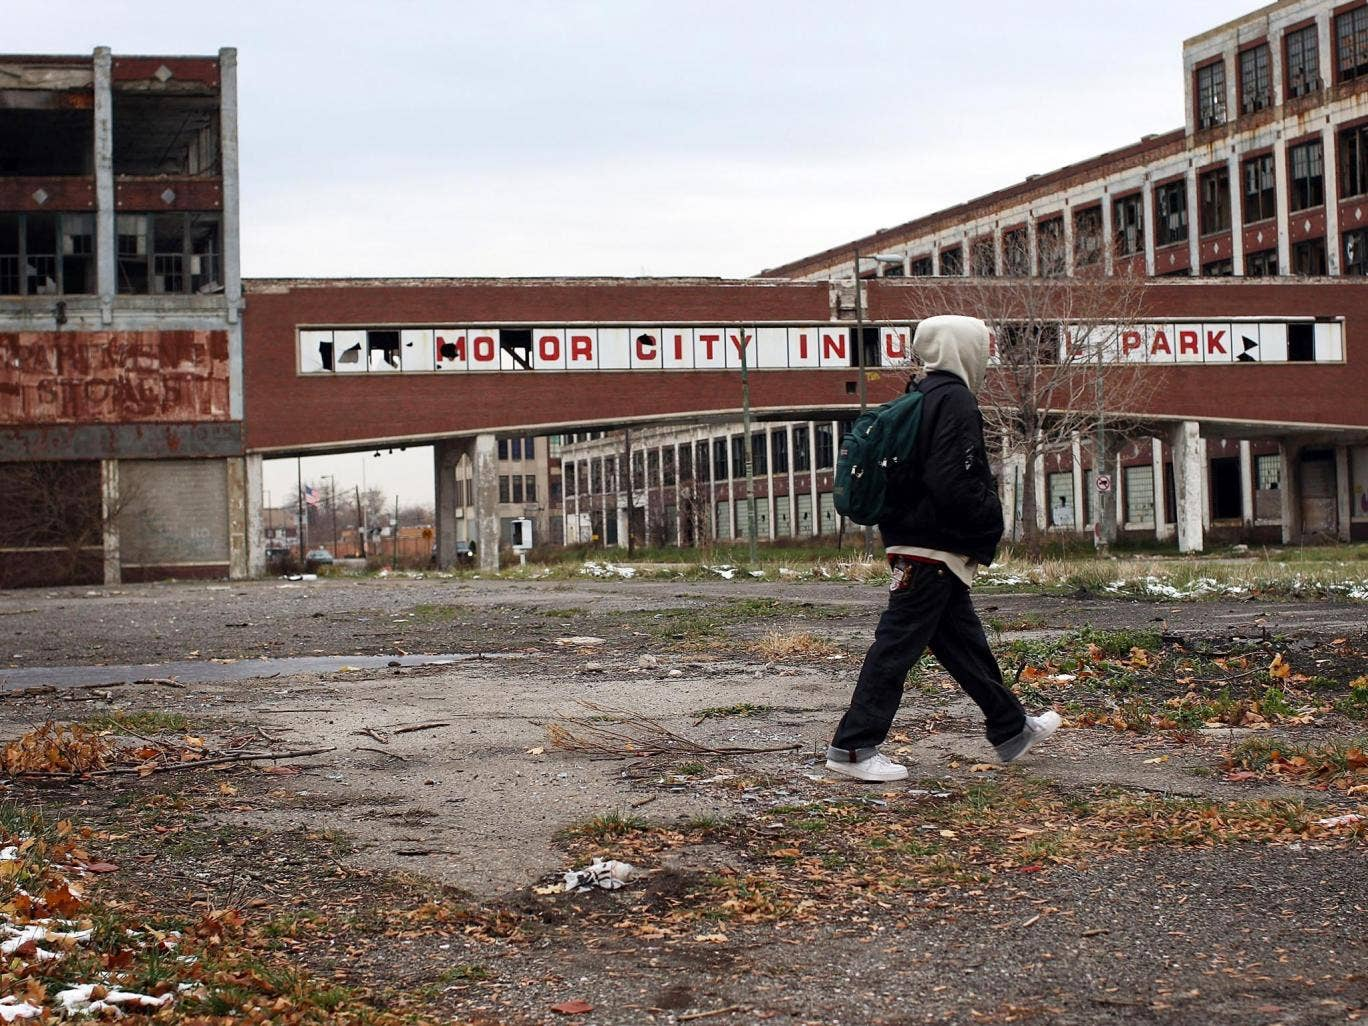 November 2008: A person walks past the remains of the Packard Motor Car Company, which ceased production in the late 1950s in Detroit